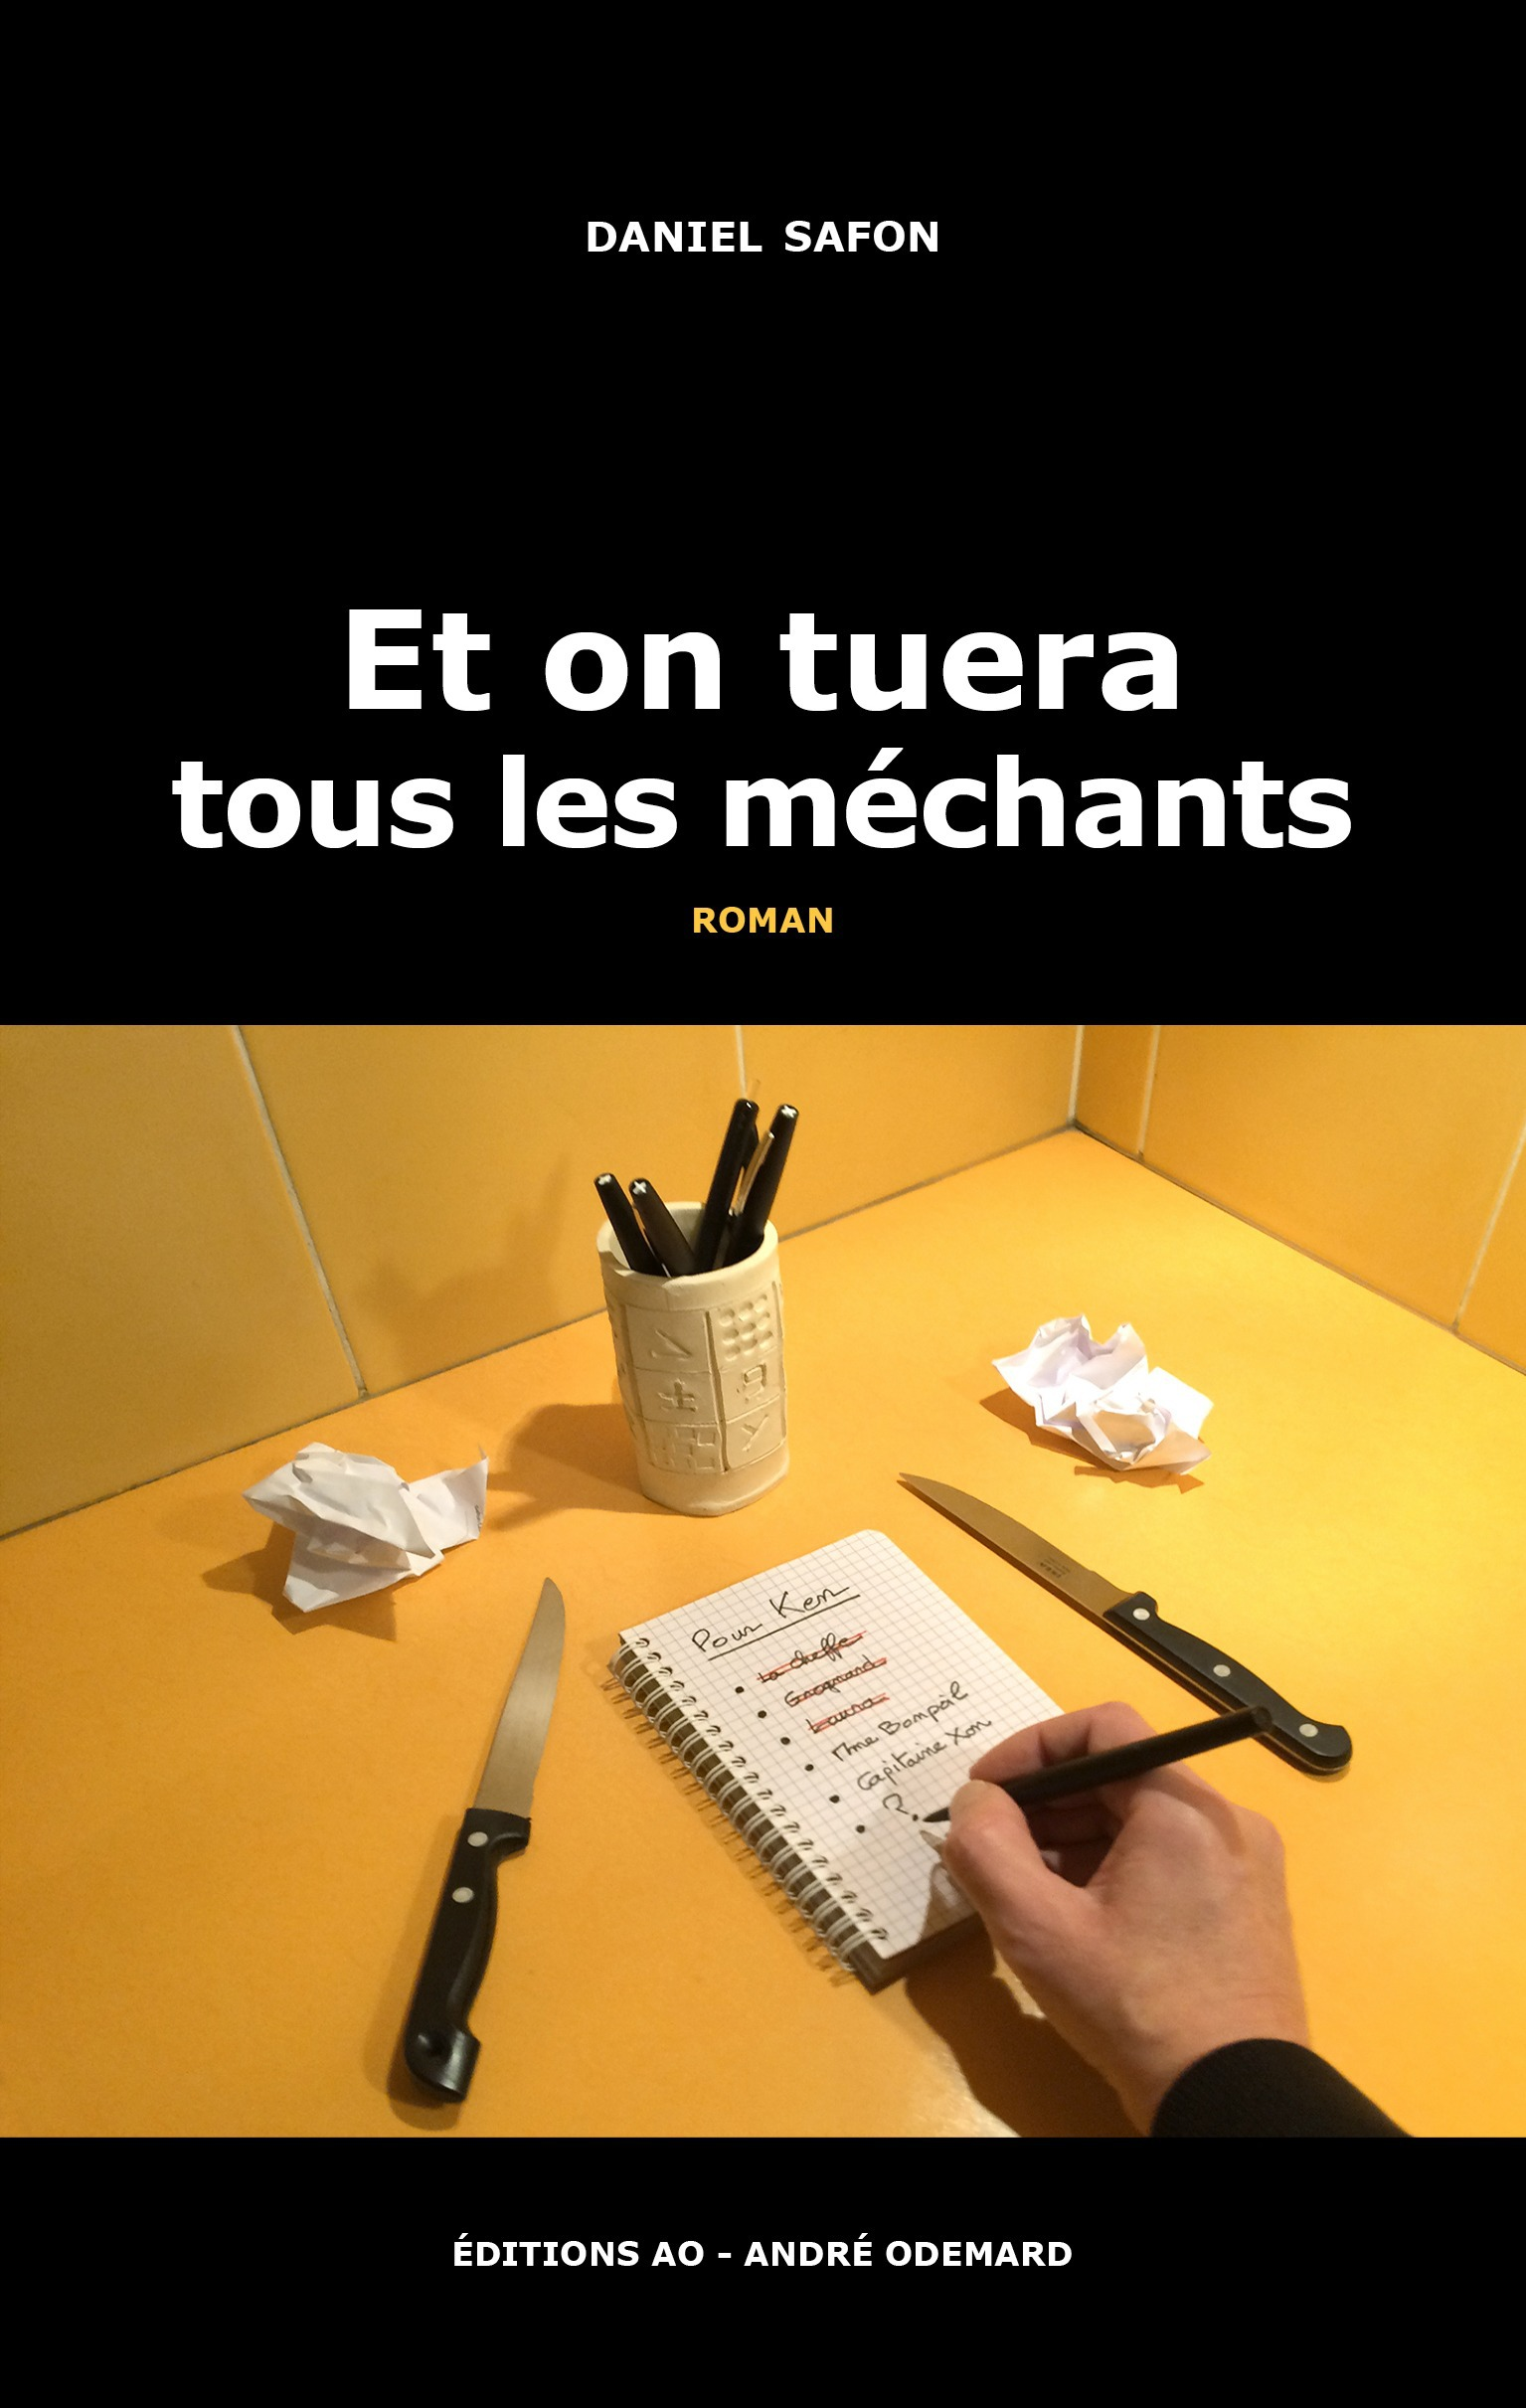 Et on tuera tous les mechants